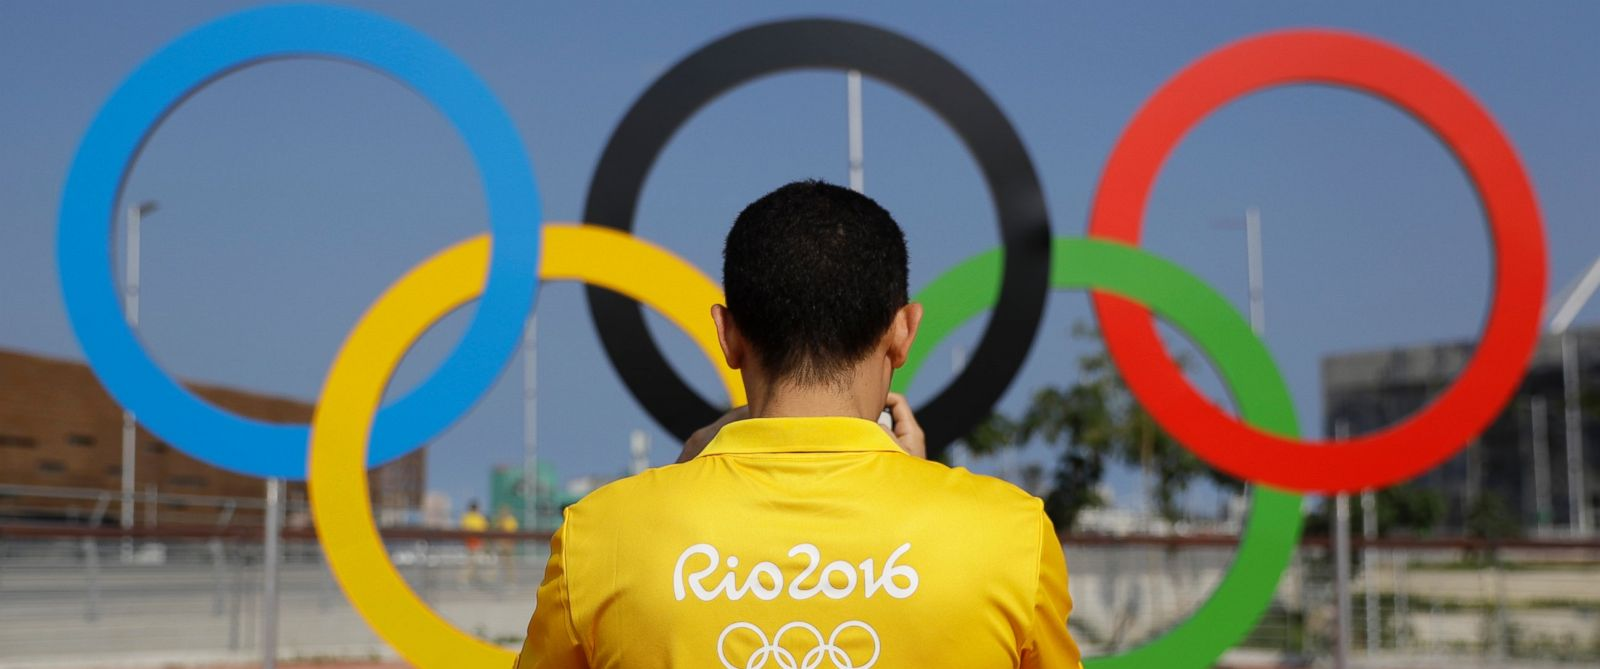 PHOTO: A volunteer photographs a set of Olympic Rings at Olympic Park in Rio de Janeiro, July 29, 2016.